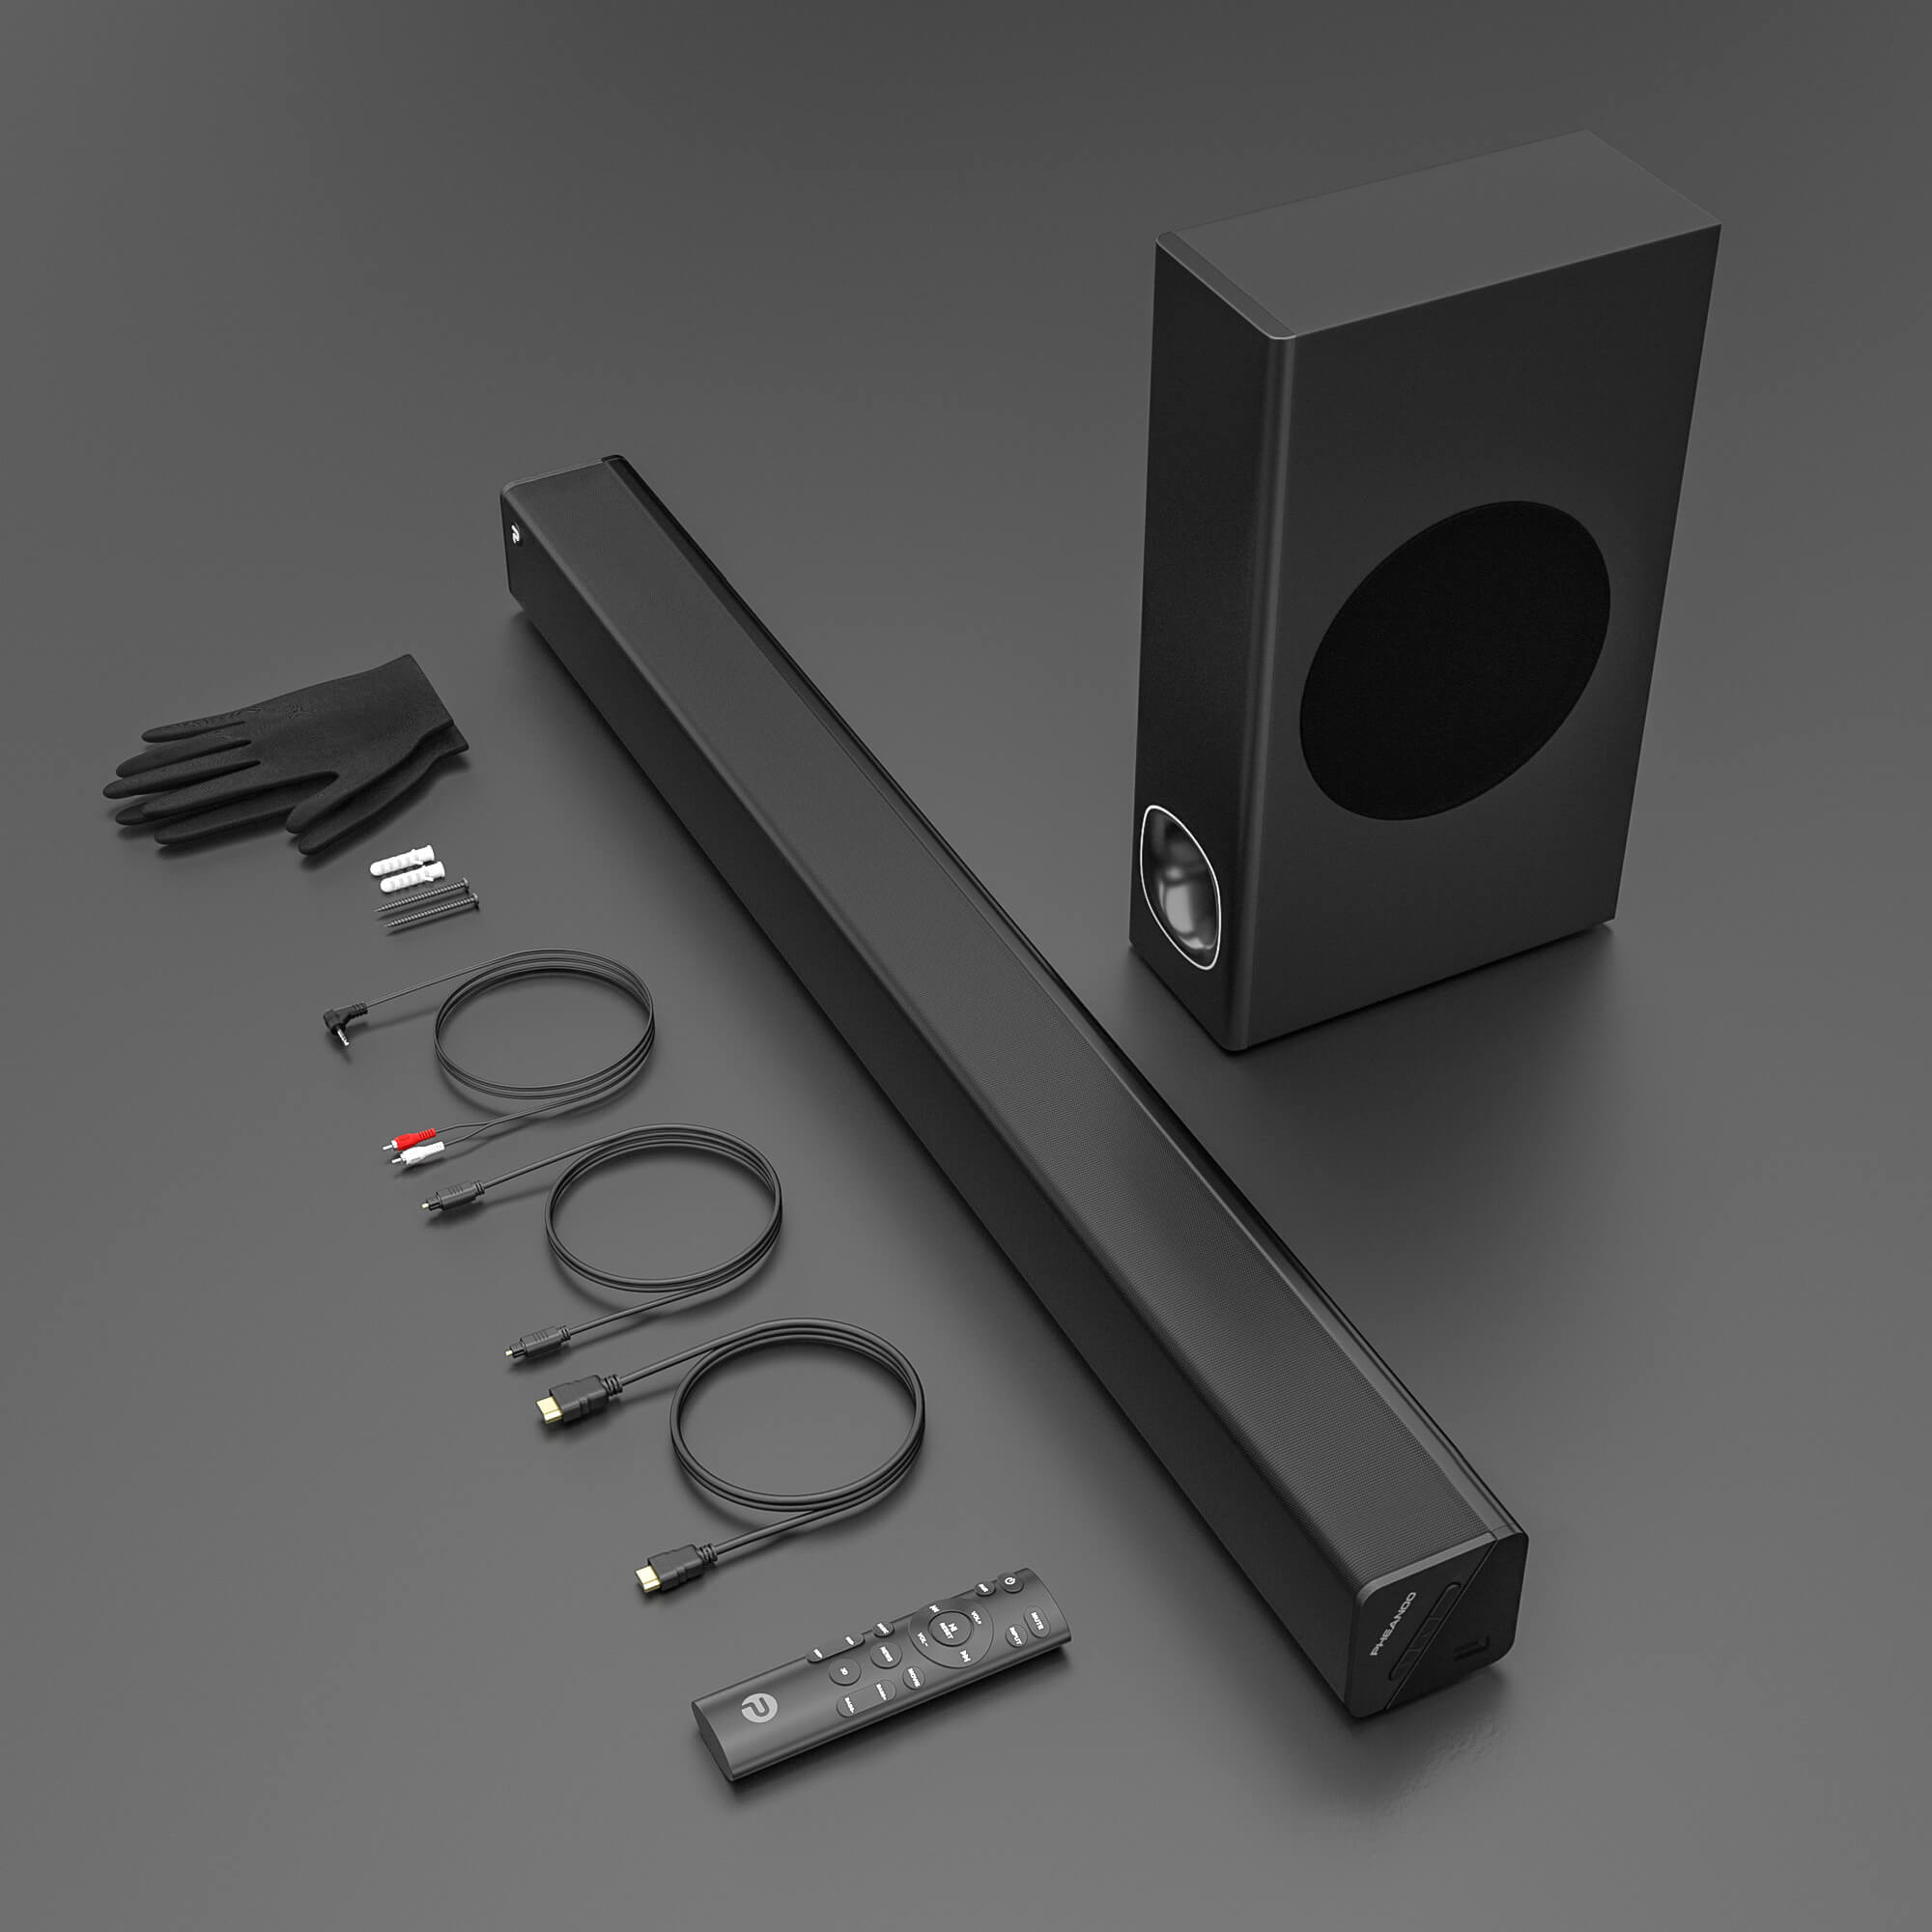 Pheanoo Audio Ltd Manufactures High-tech Soundbar Surround Sound System For TV With Subwoofer HDMI